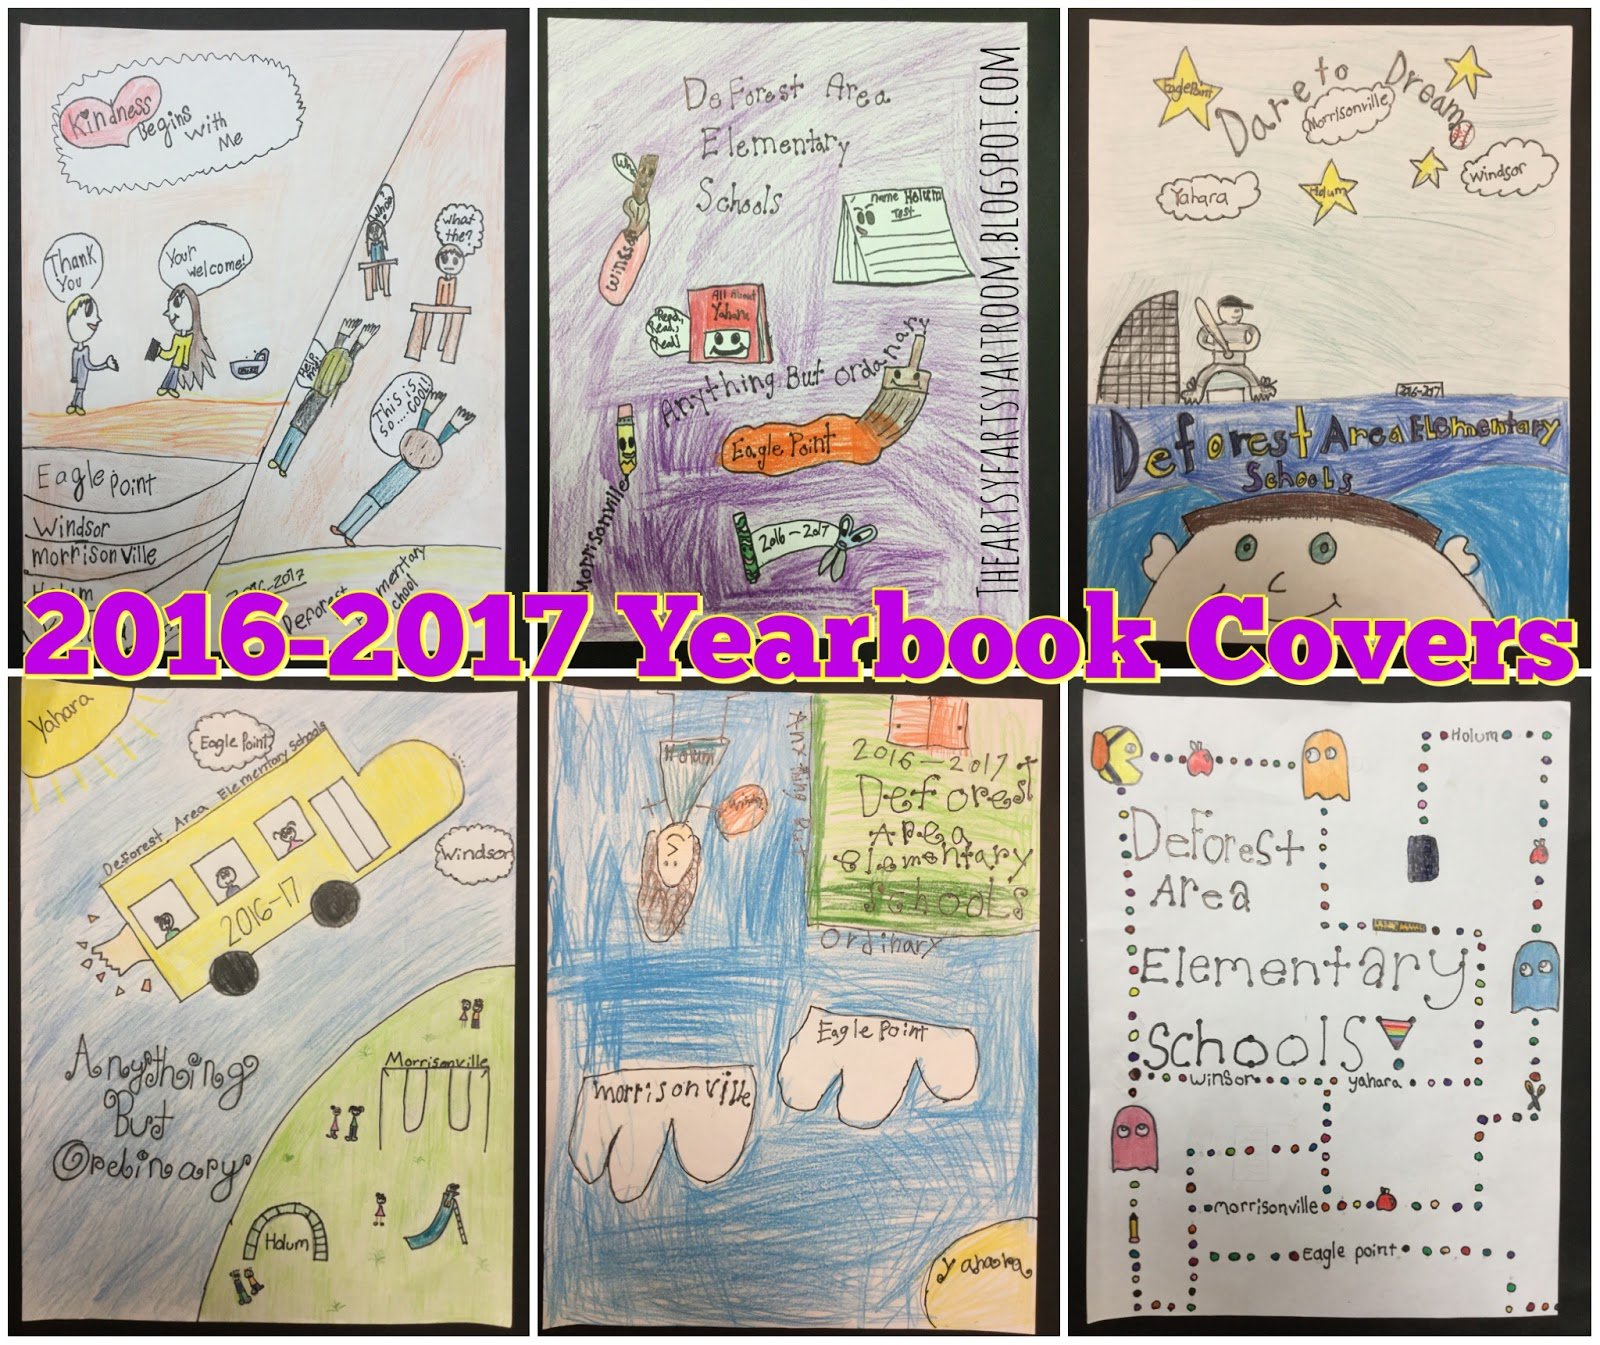 School Yearbook Cover Ideas : The artsy fartsy art room yearbook covers